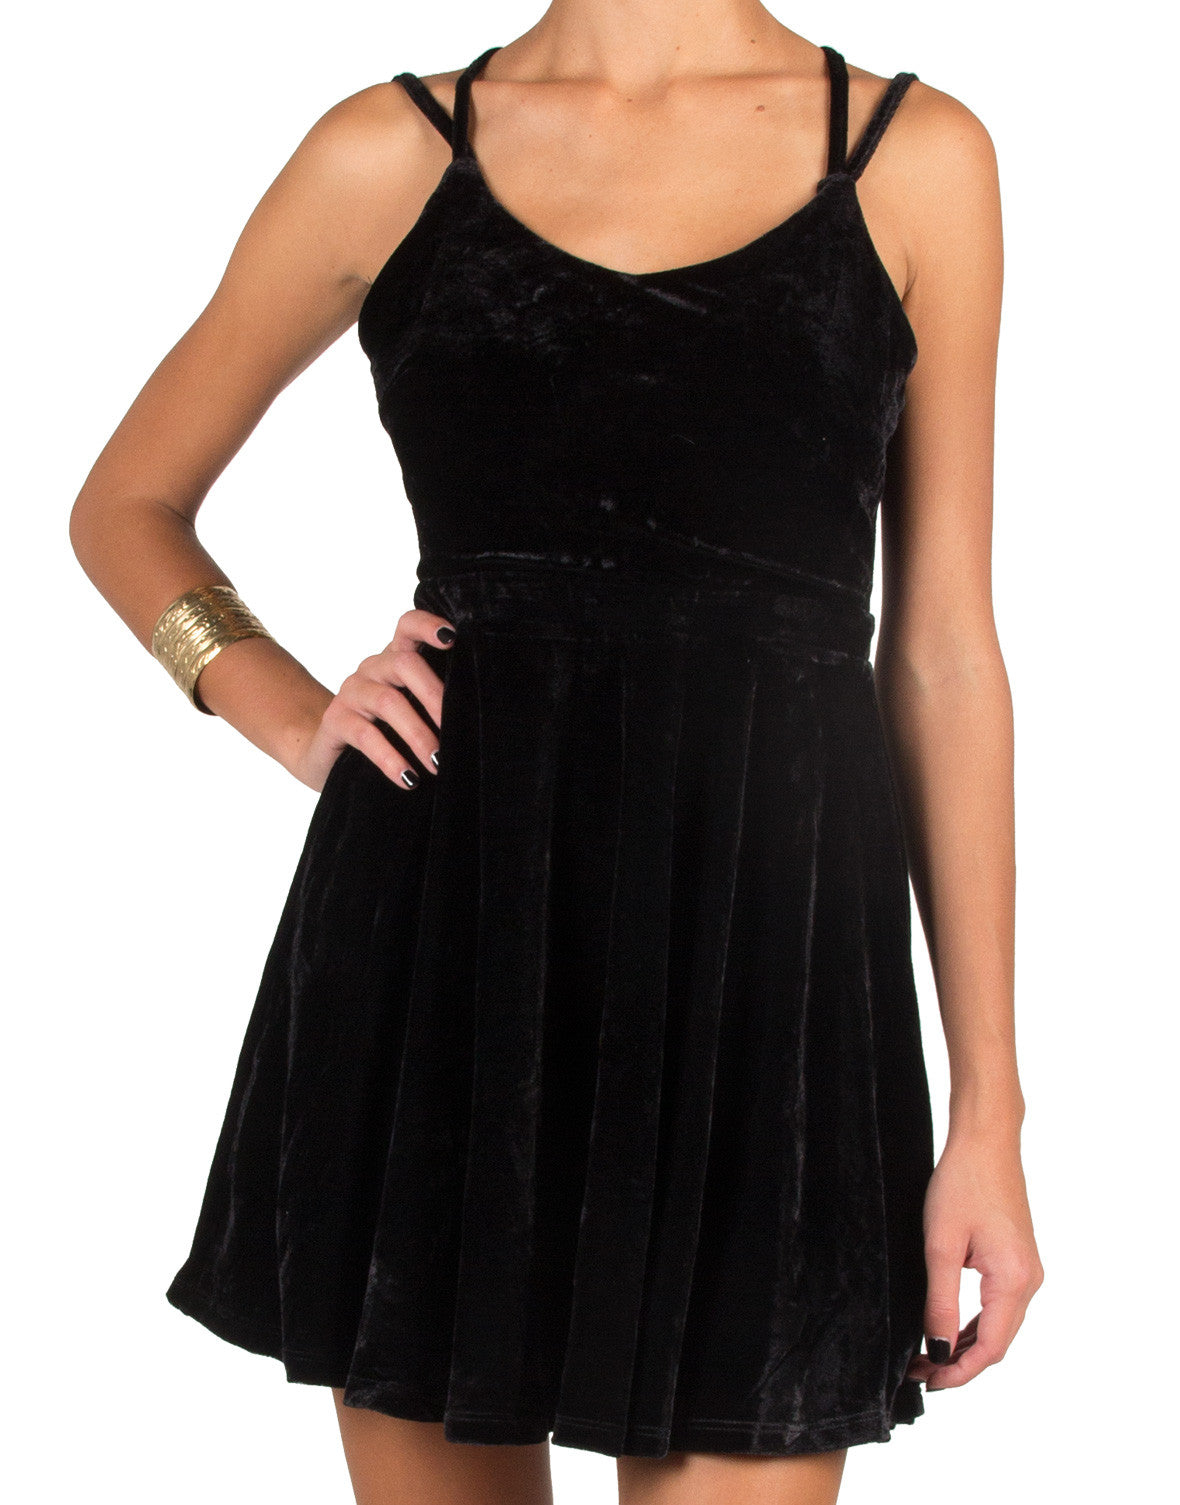 Strappy Velvet Dress - Black